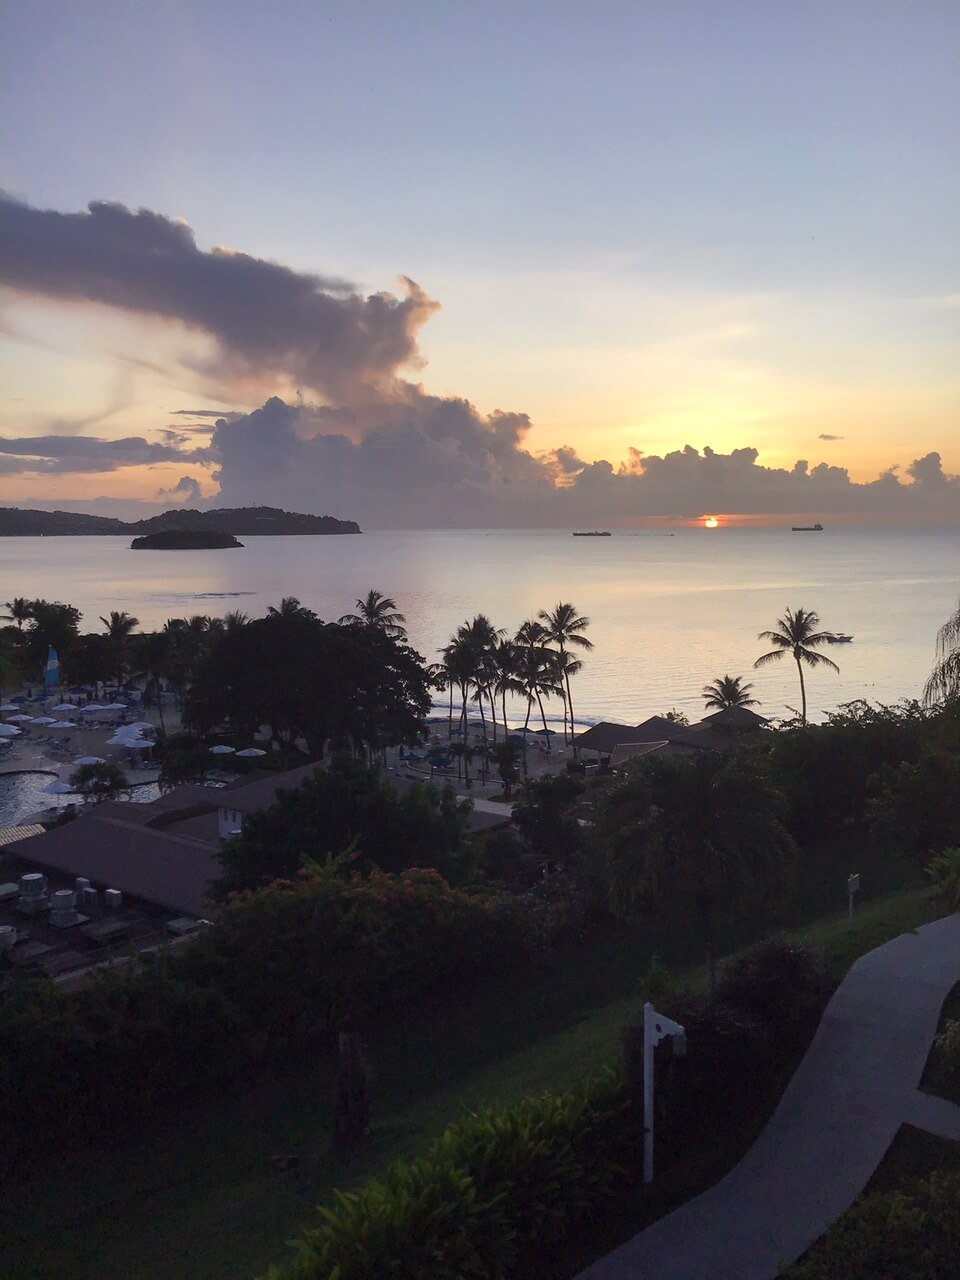 Trinidad to Saint Lucia: From the land of KFC to a land of elegance